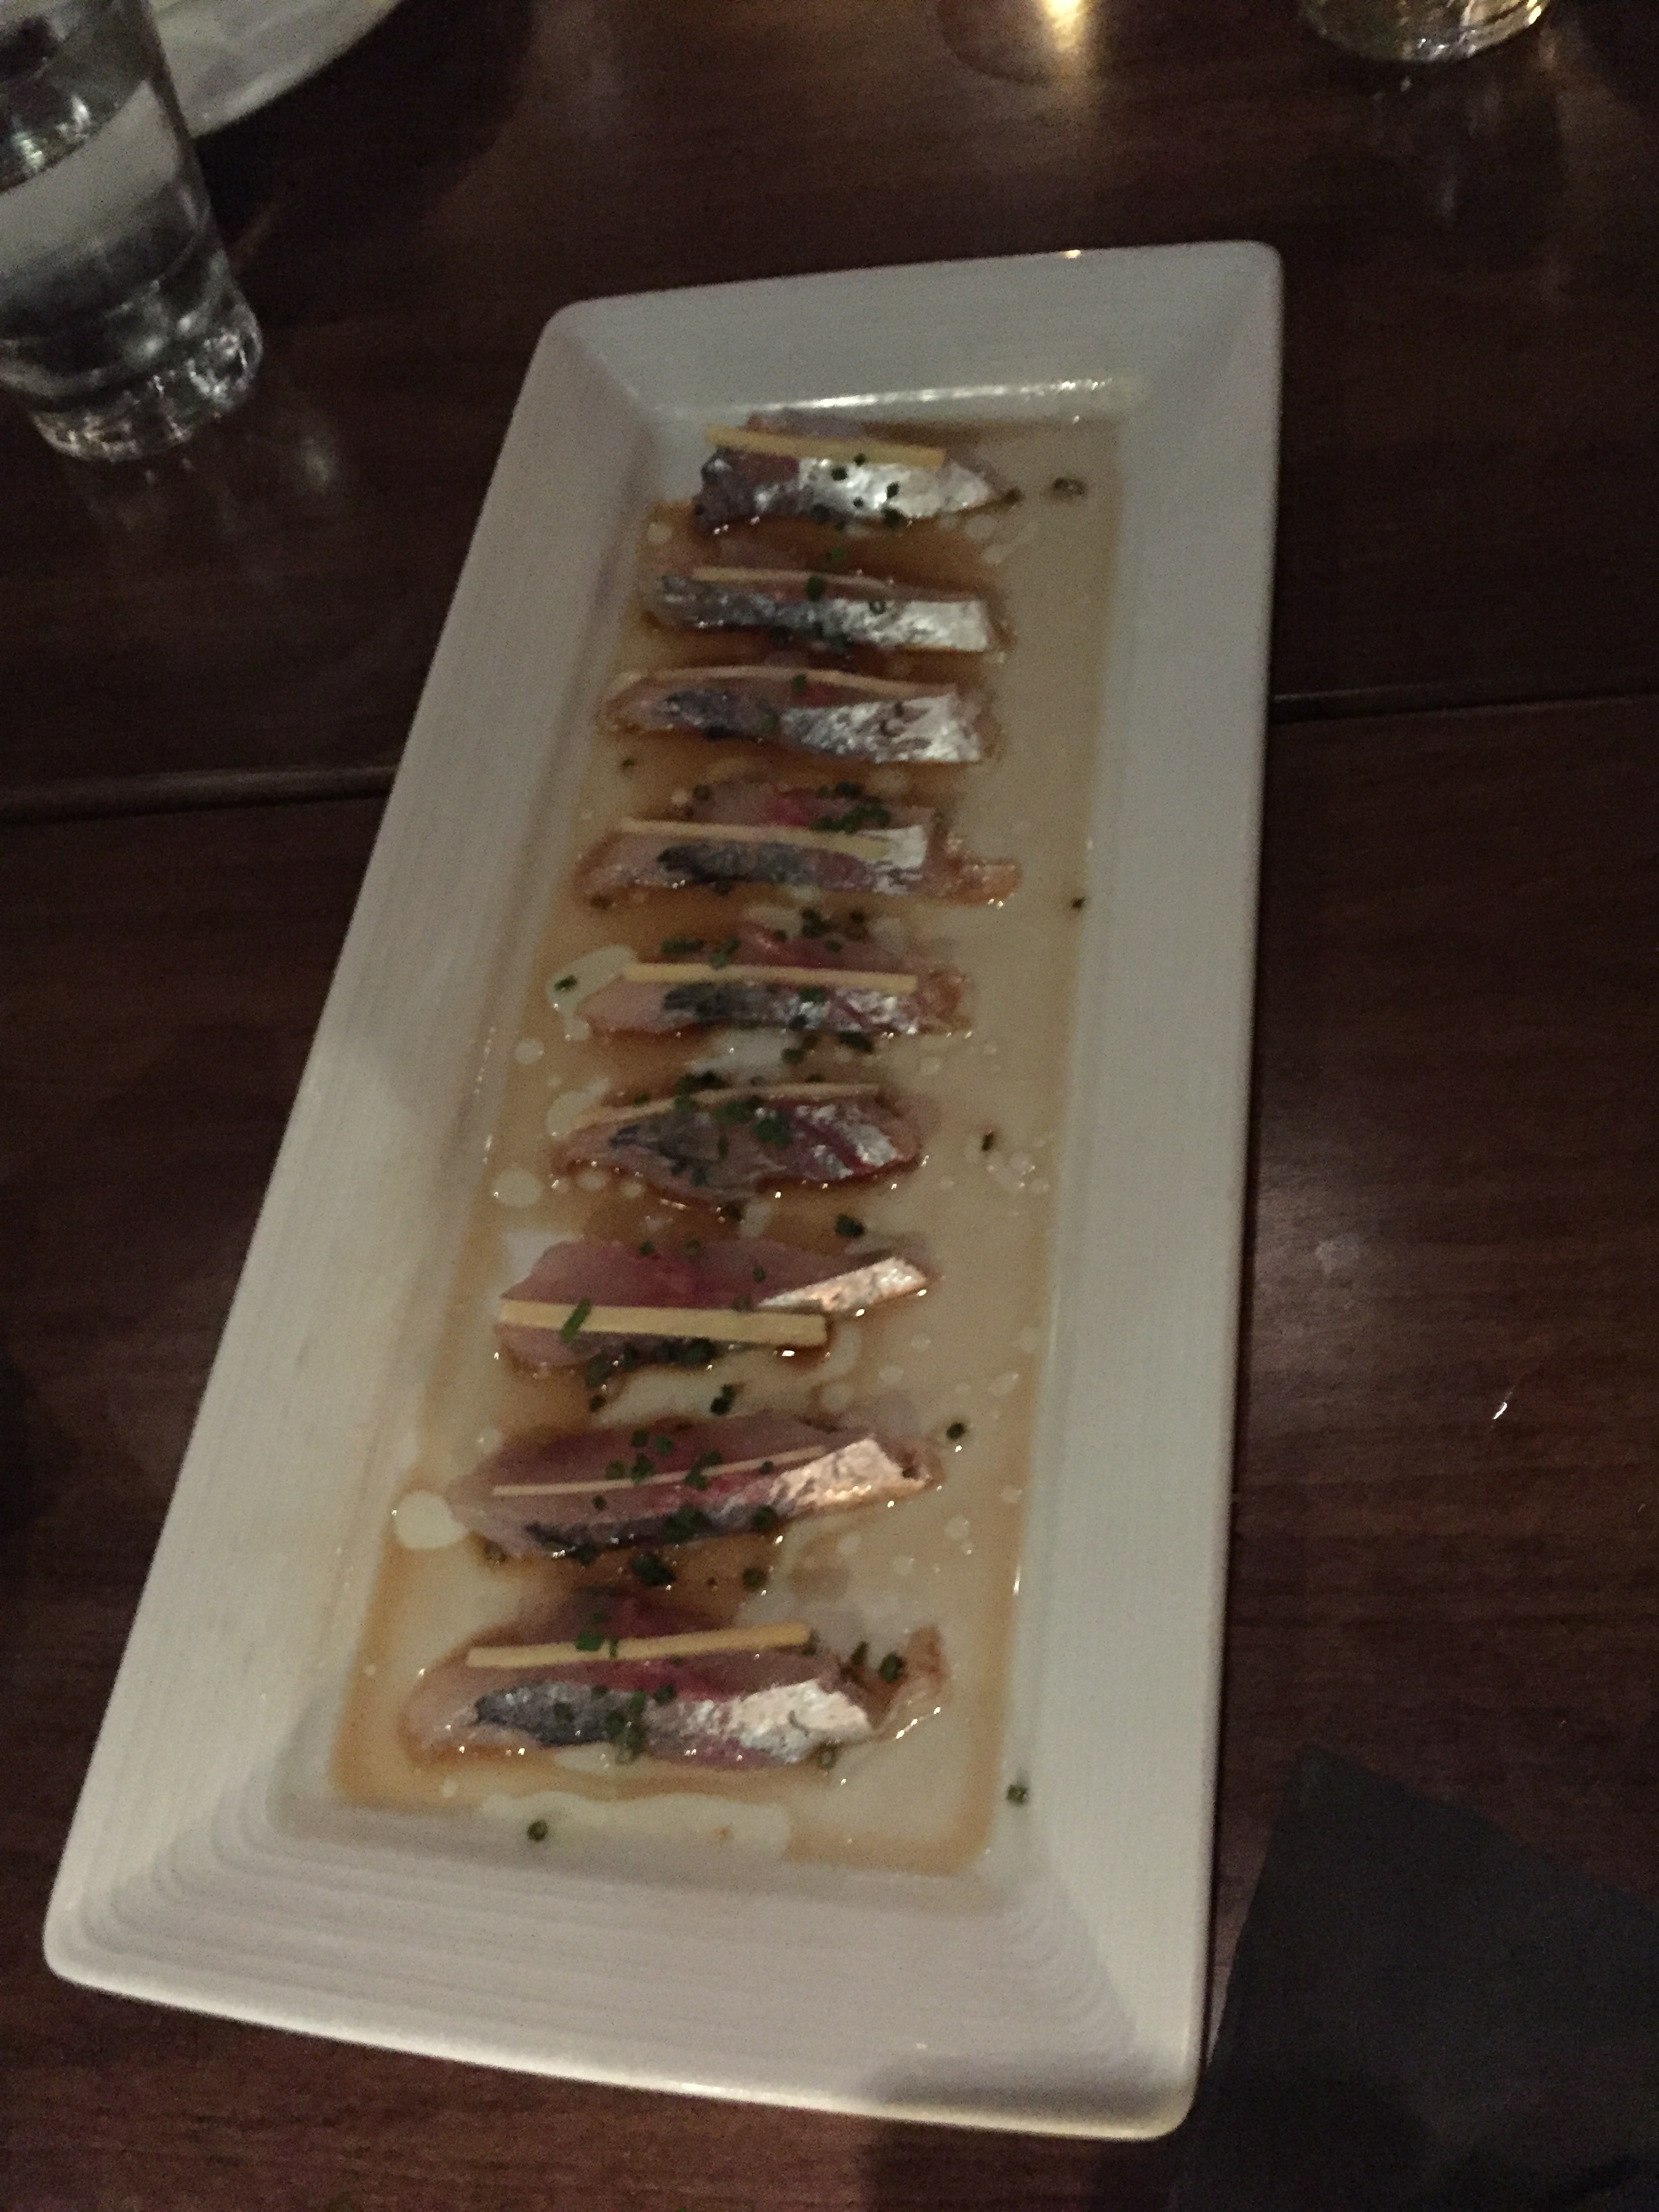 Aji - Spanish Mackerel, with ginger sliver, in ponzu sauce with a sprinkling of chive